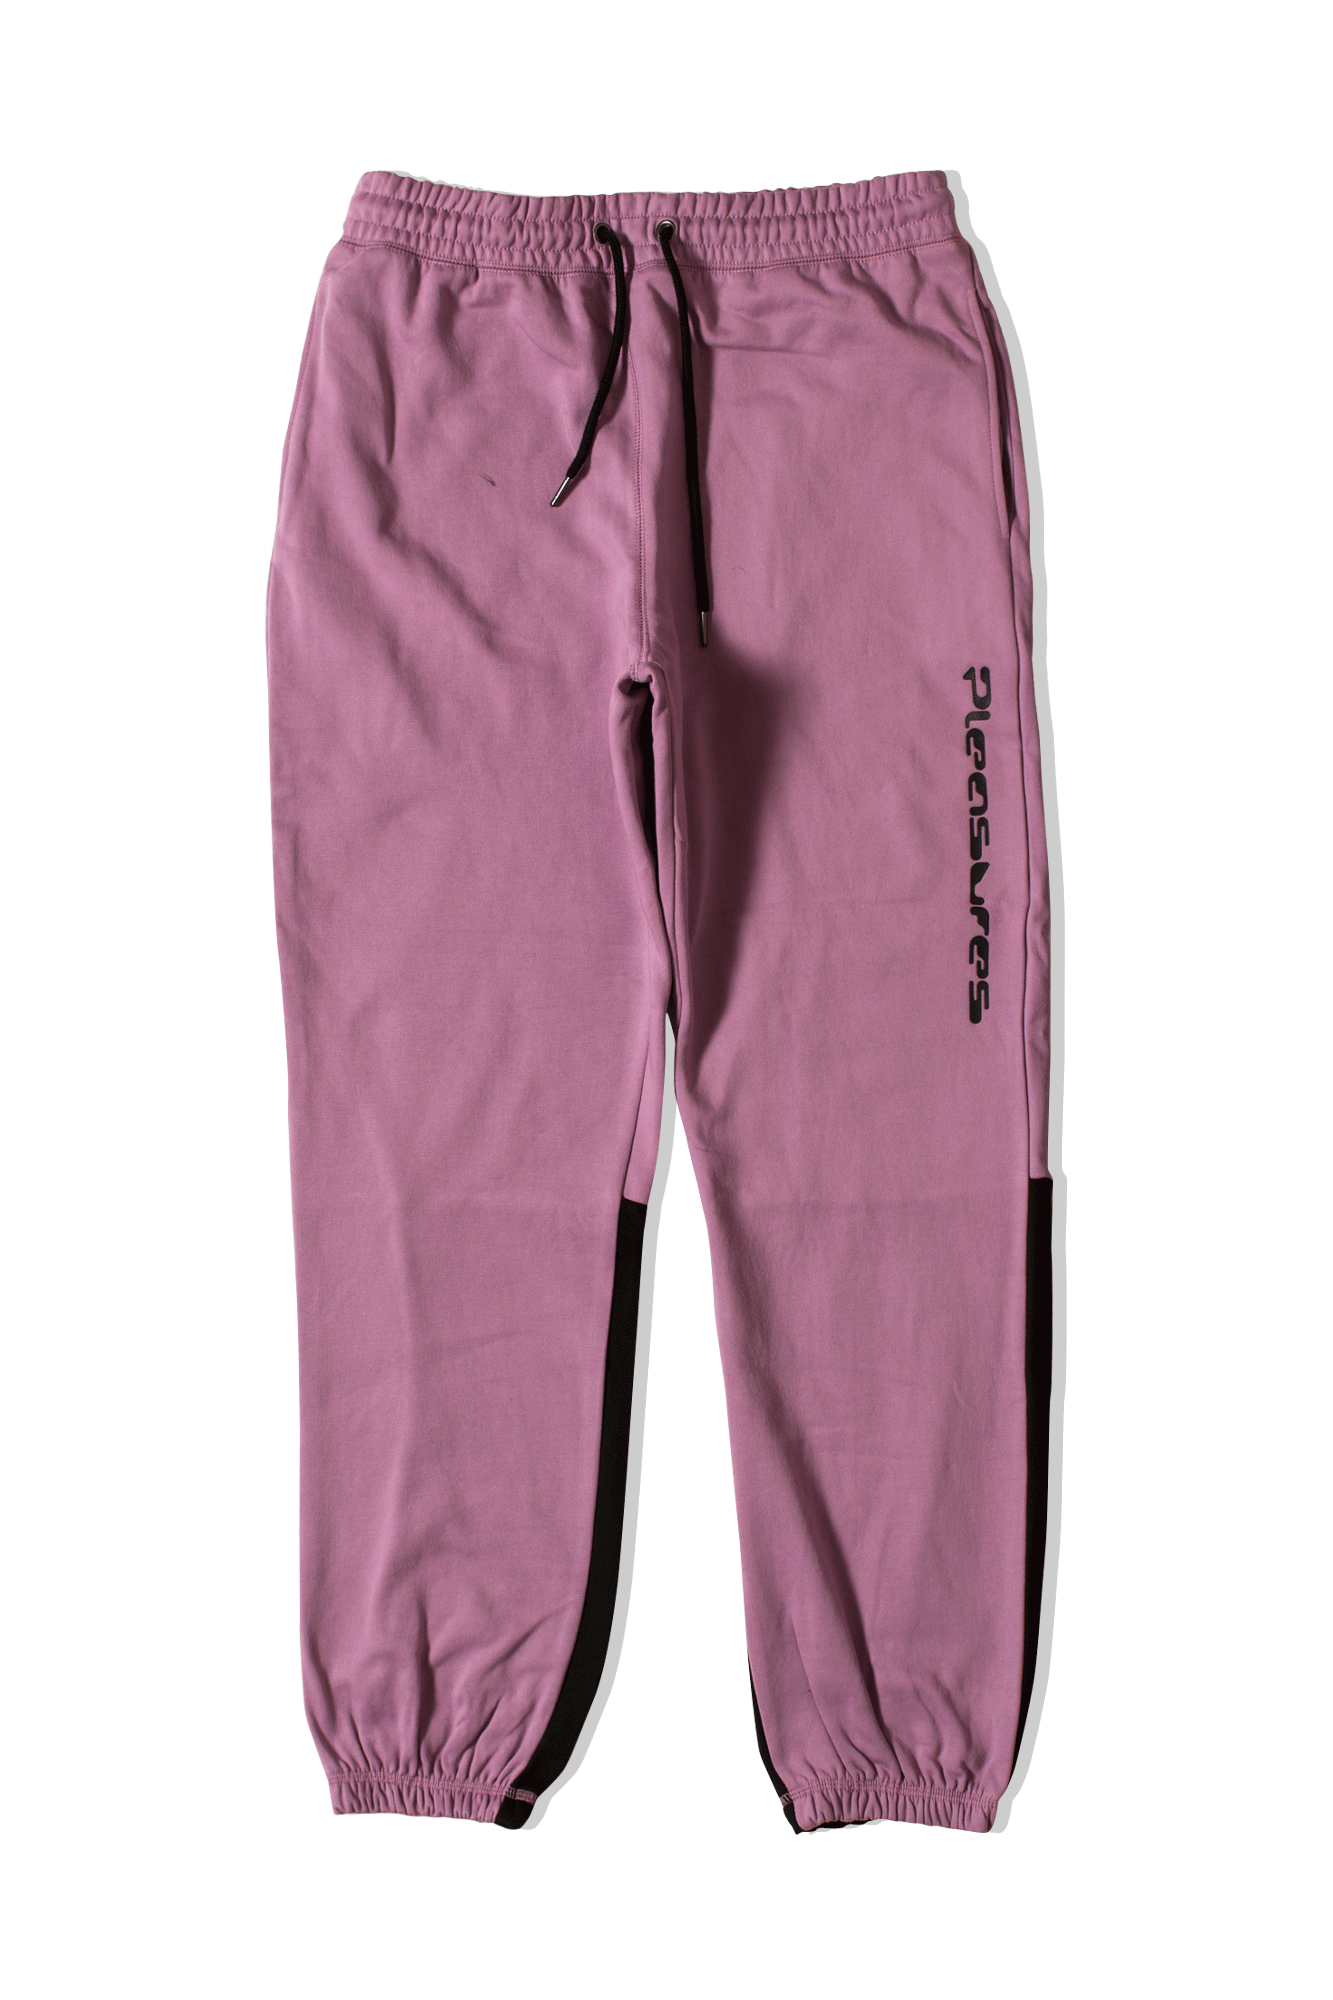 Hard Drive Sweatpants Purple